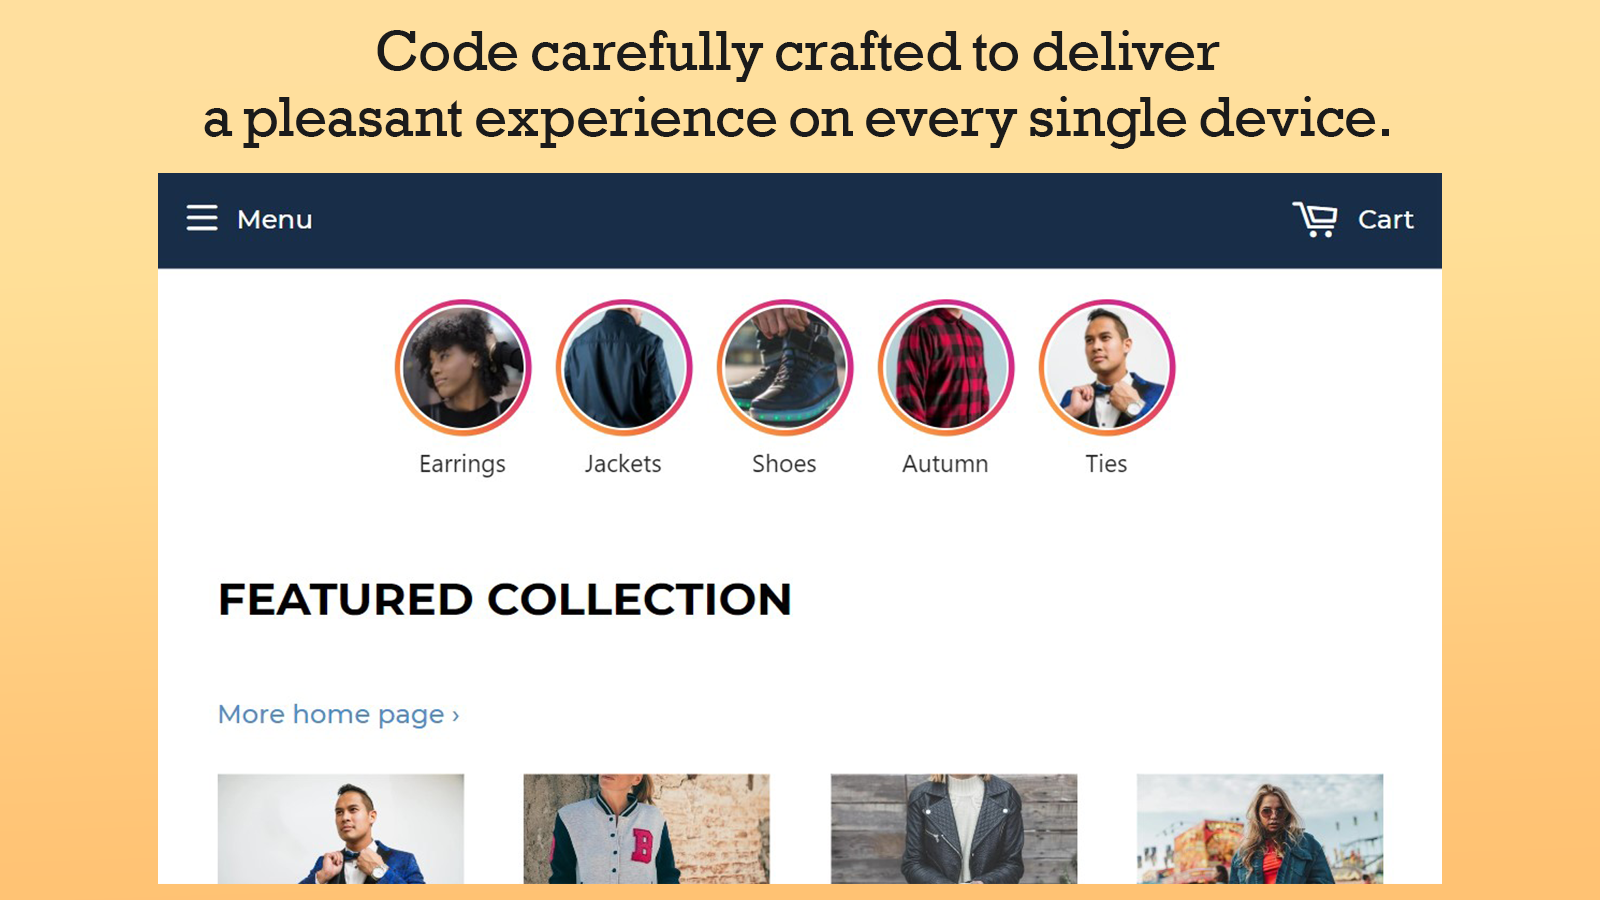 Carefully coded to deliver a pleasant experience on every device